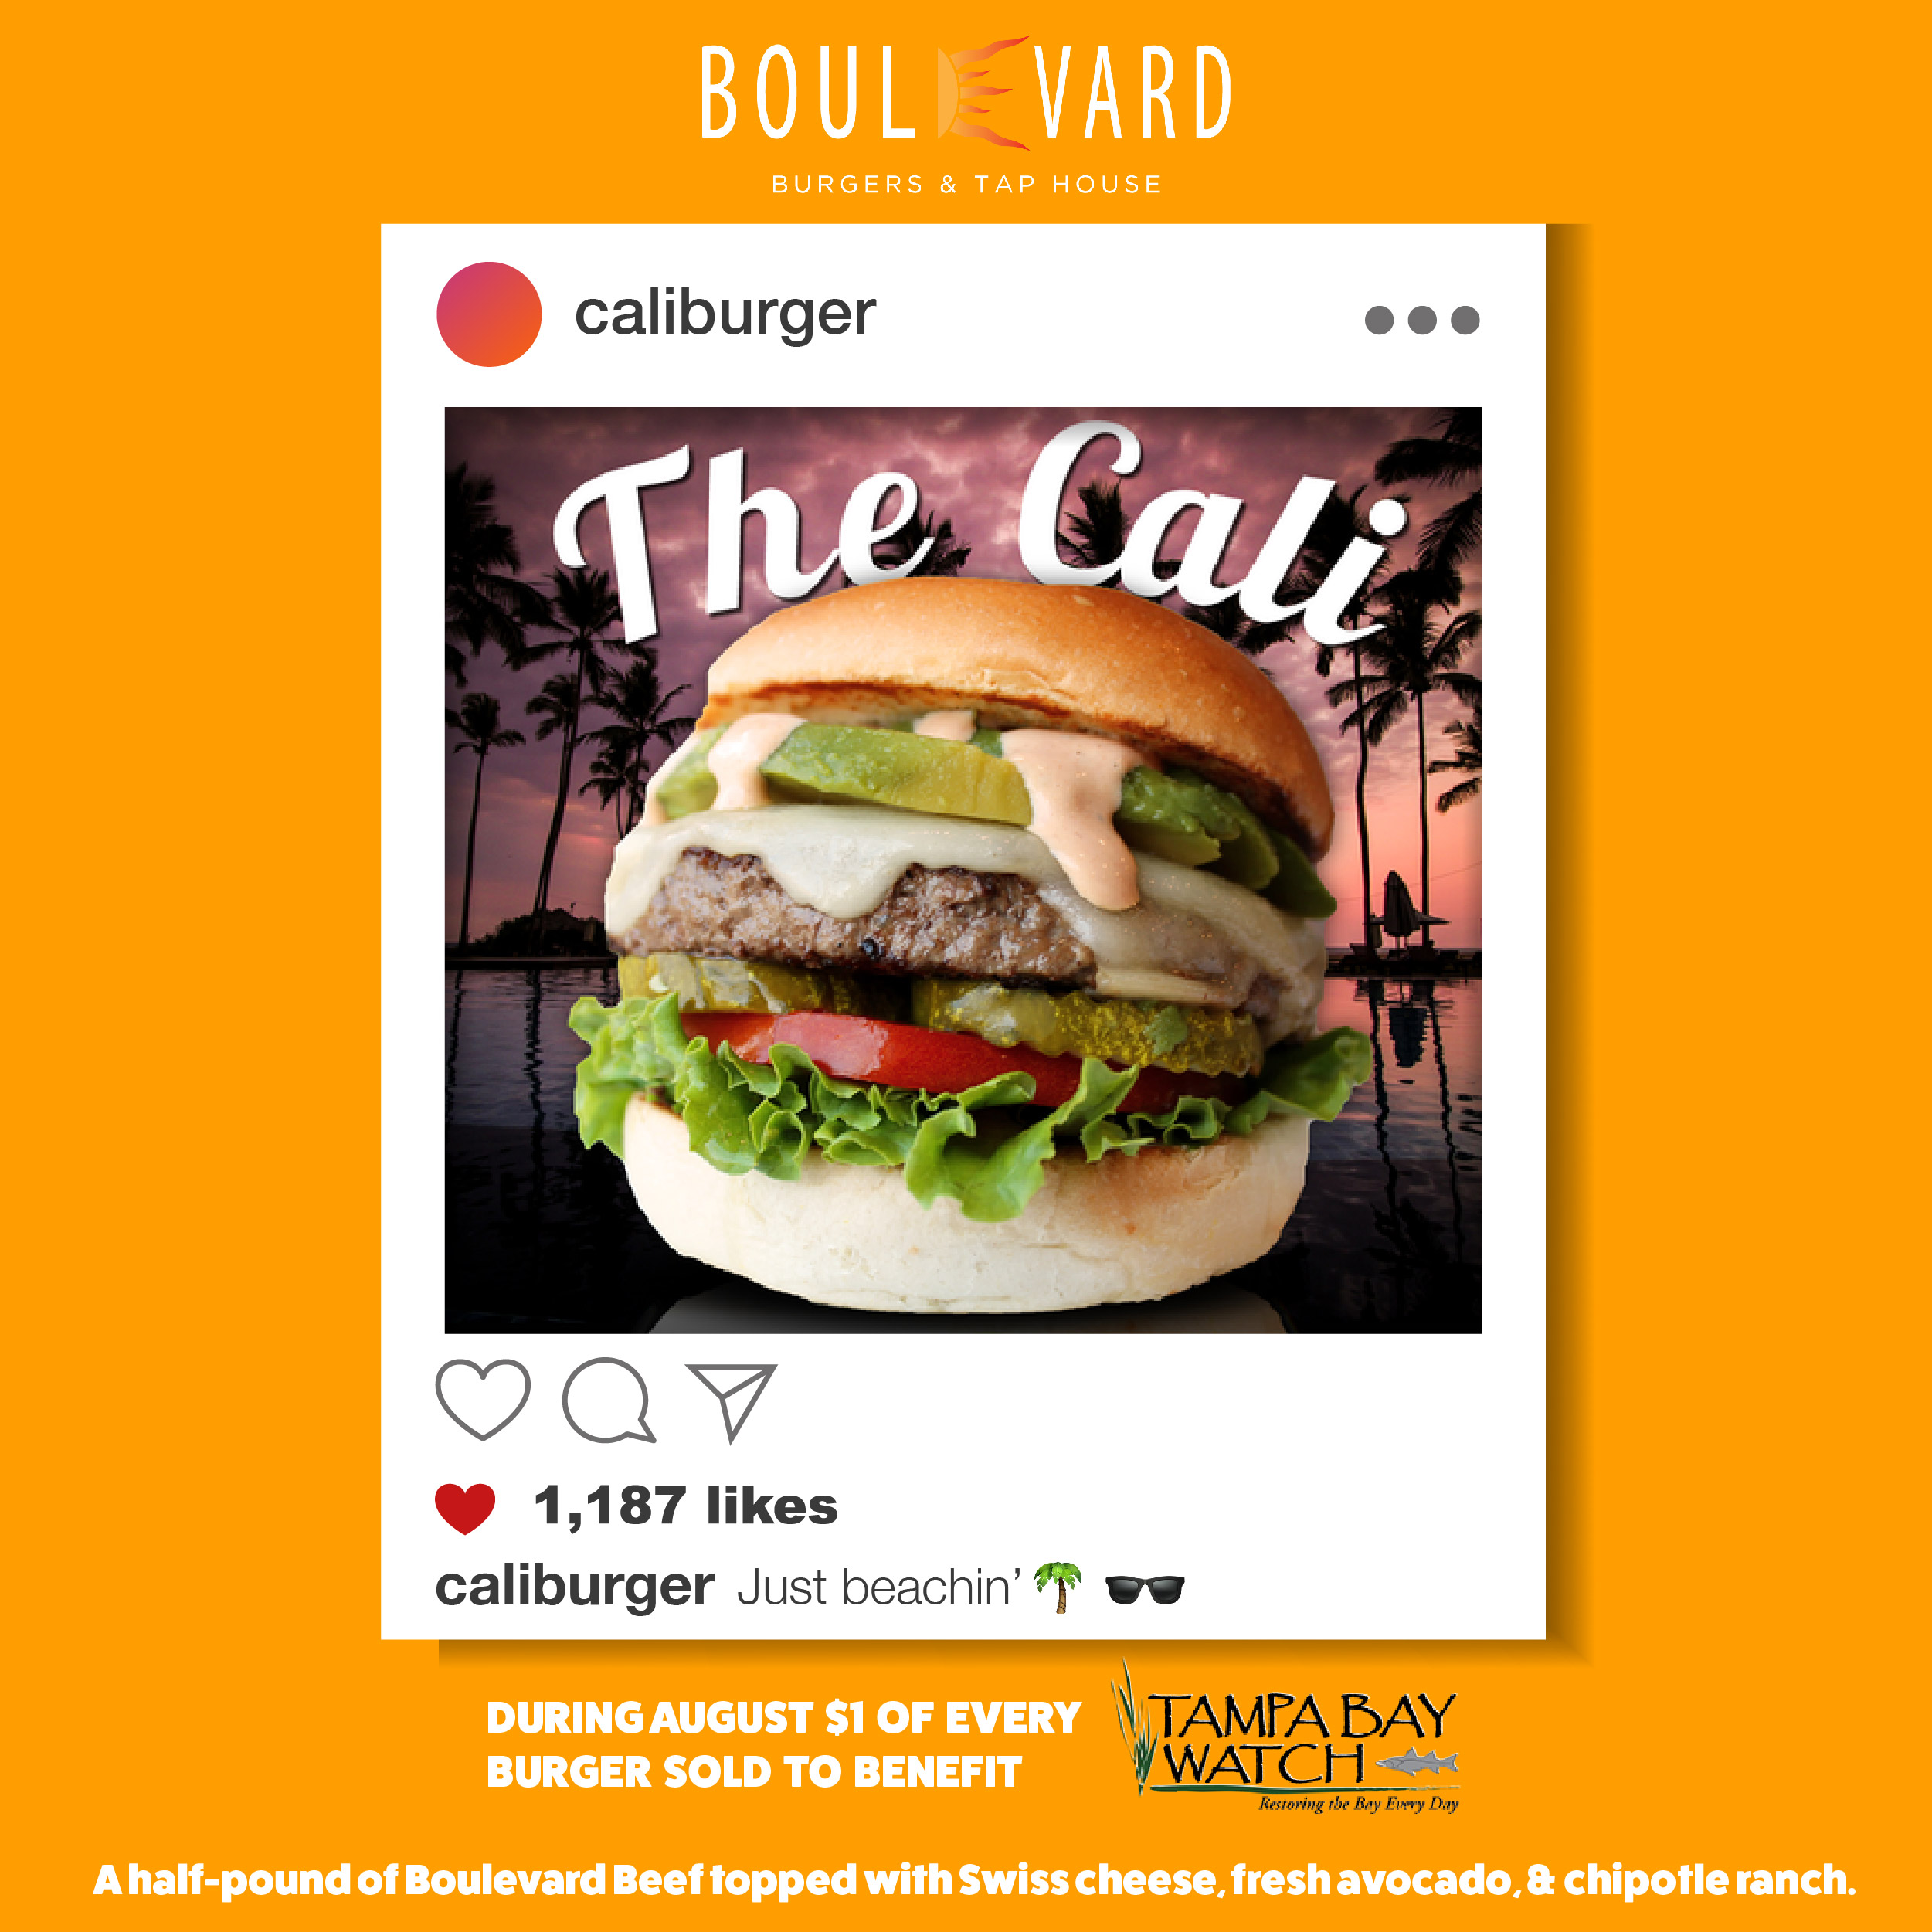 Boulevard Burgers & Tap House Partners with Tampa Bay Watch